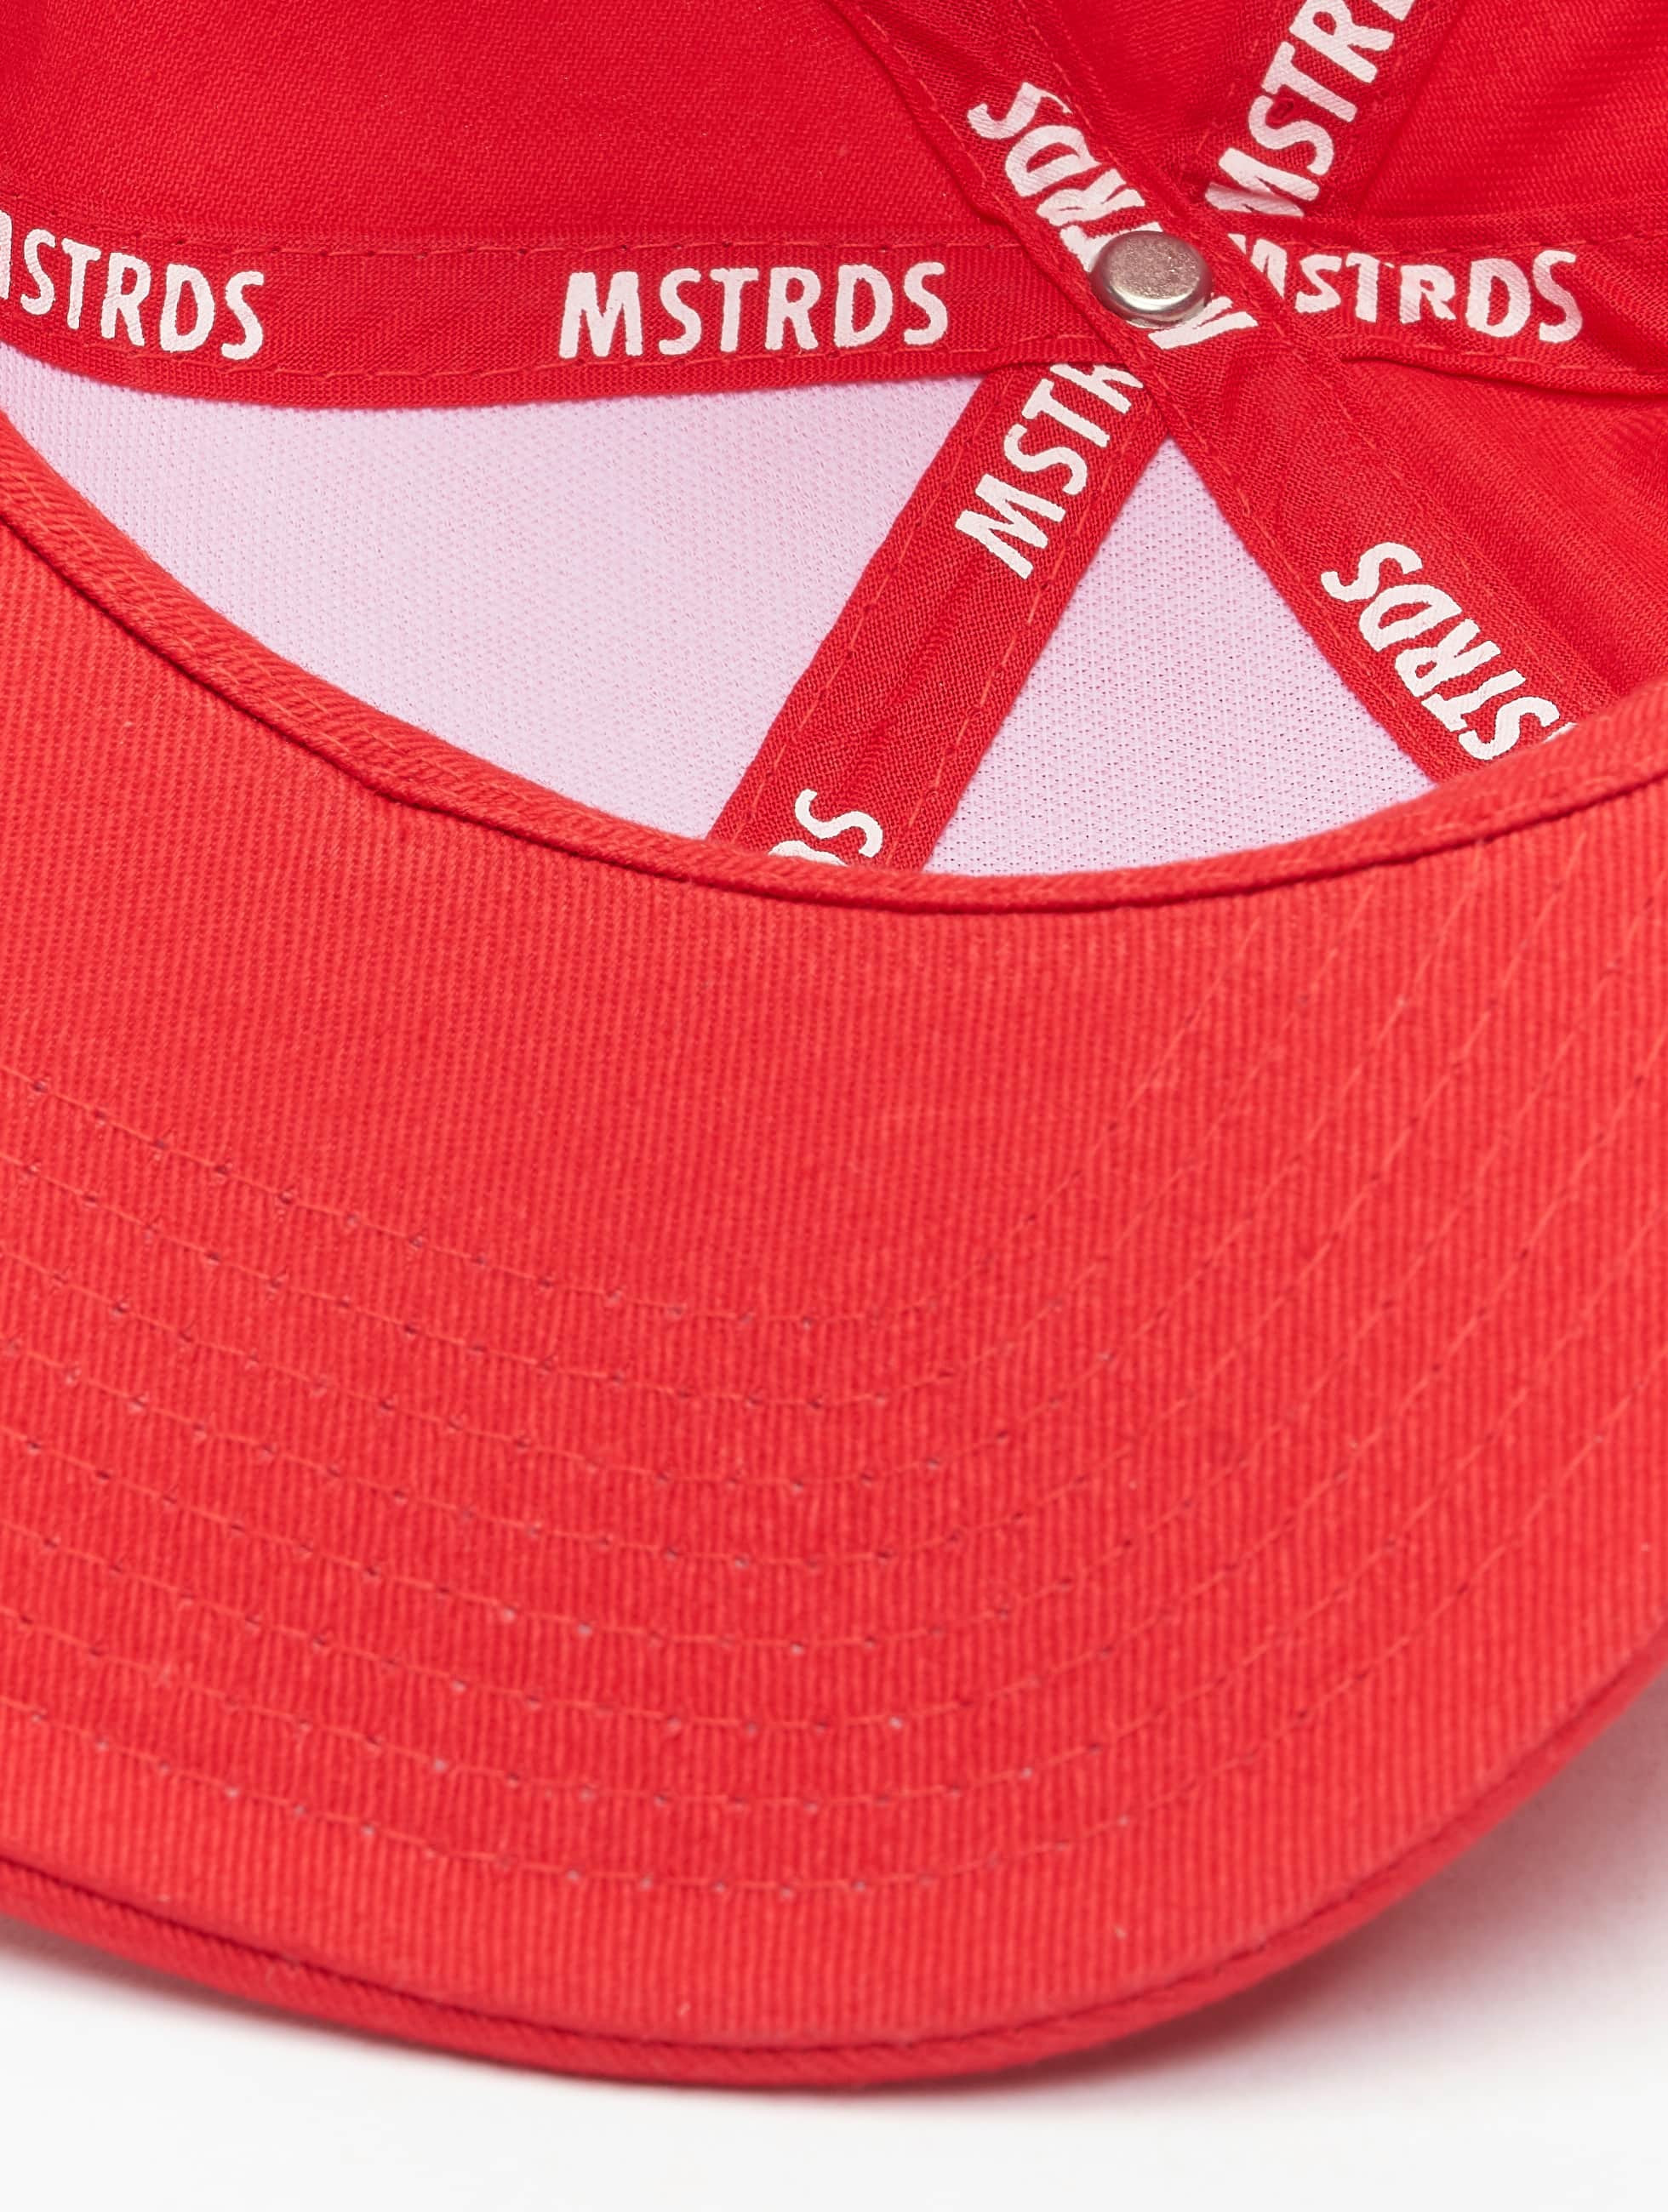 MSTRDS snapback cap Money Clip rood